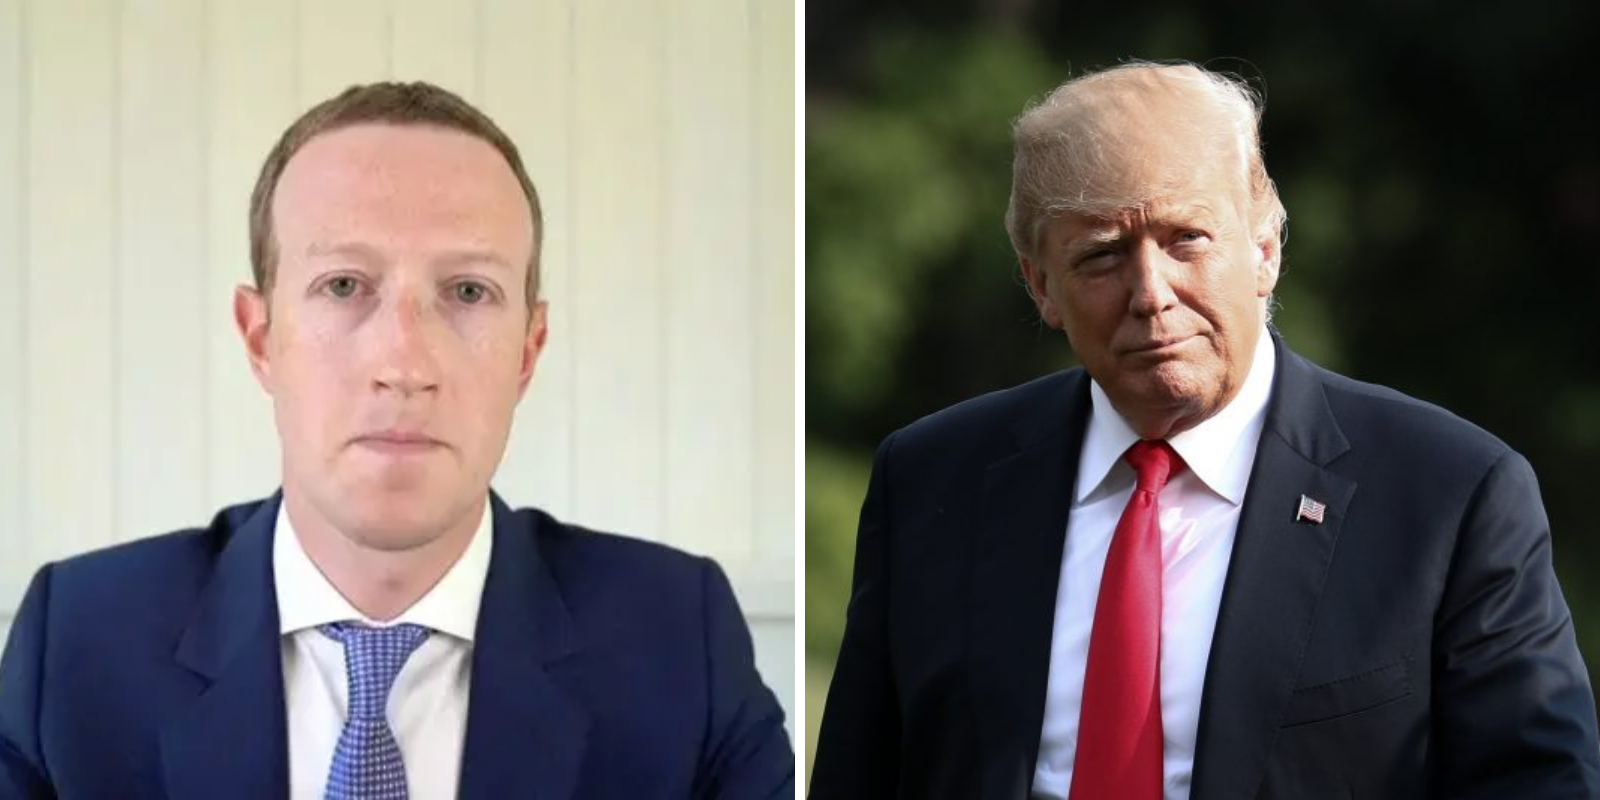 BREAKING: Facebook Oversight Board upholds ban on Trump